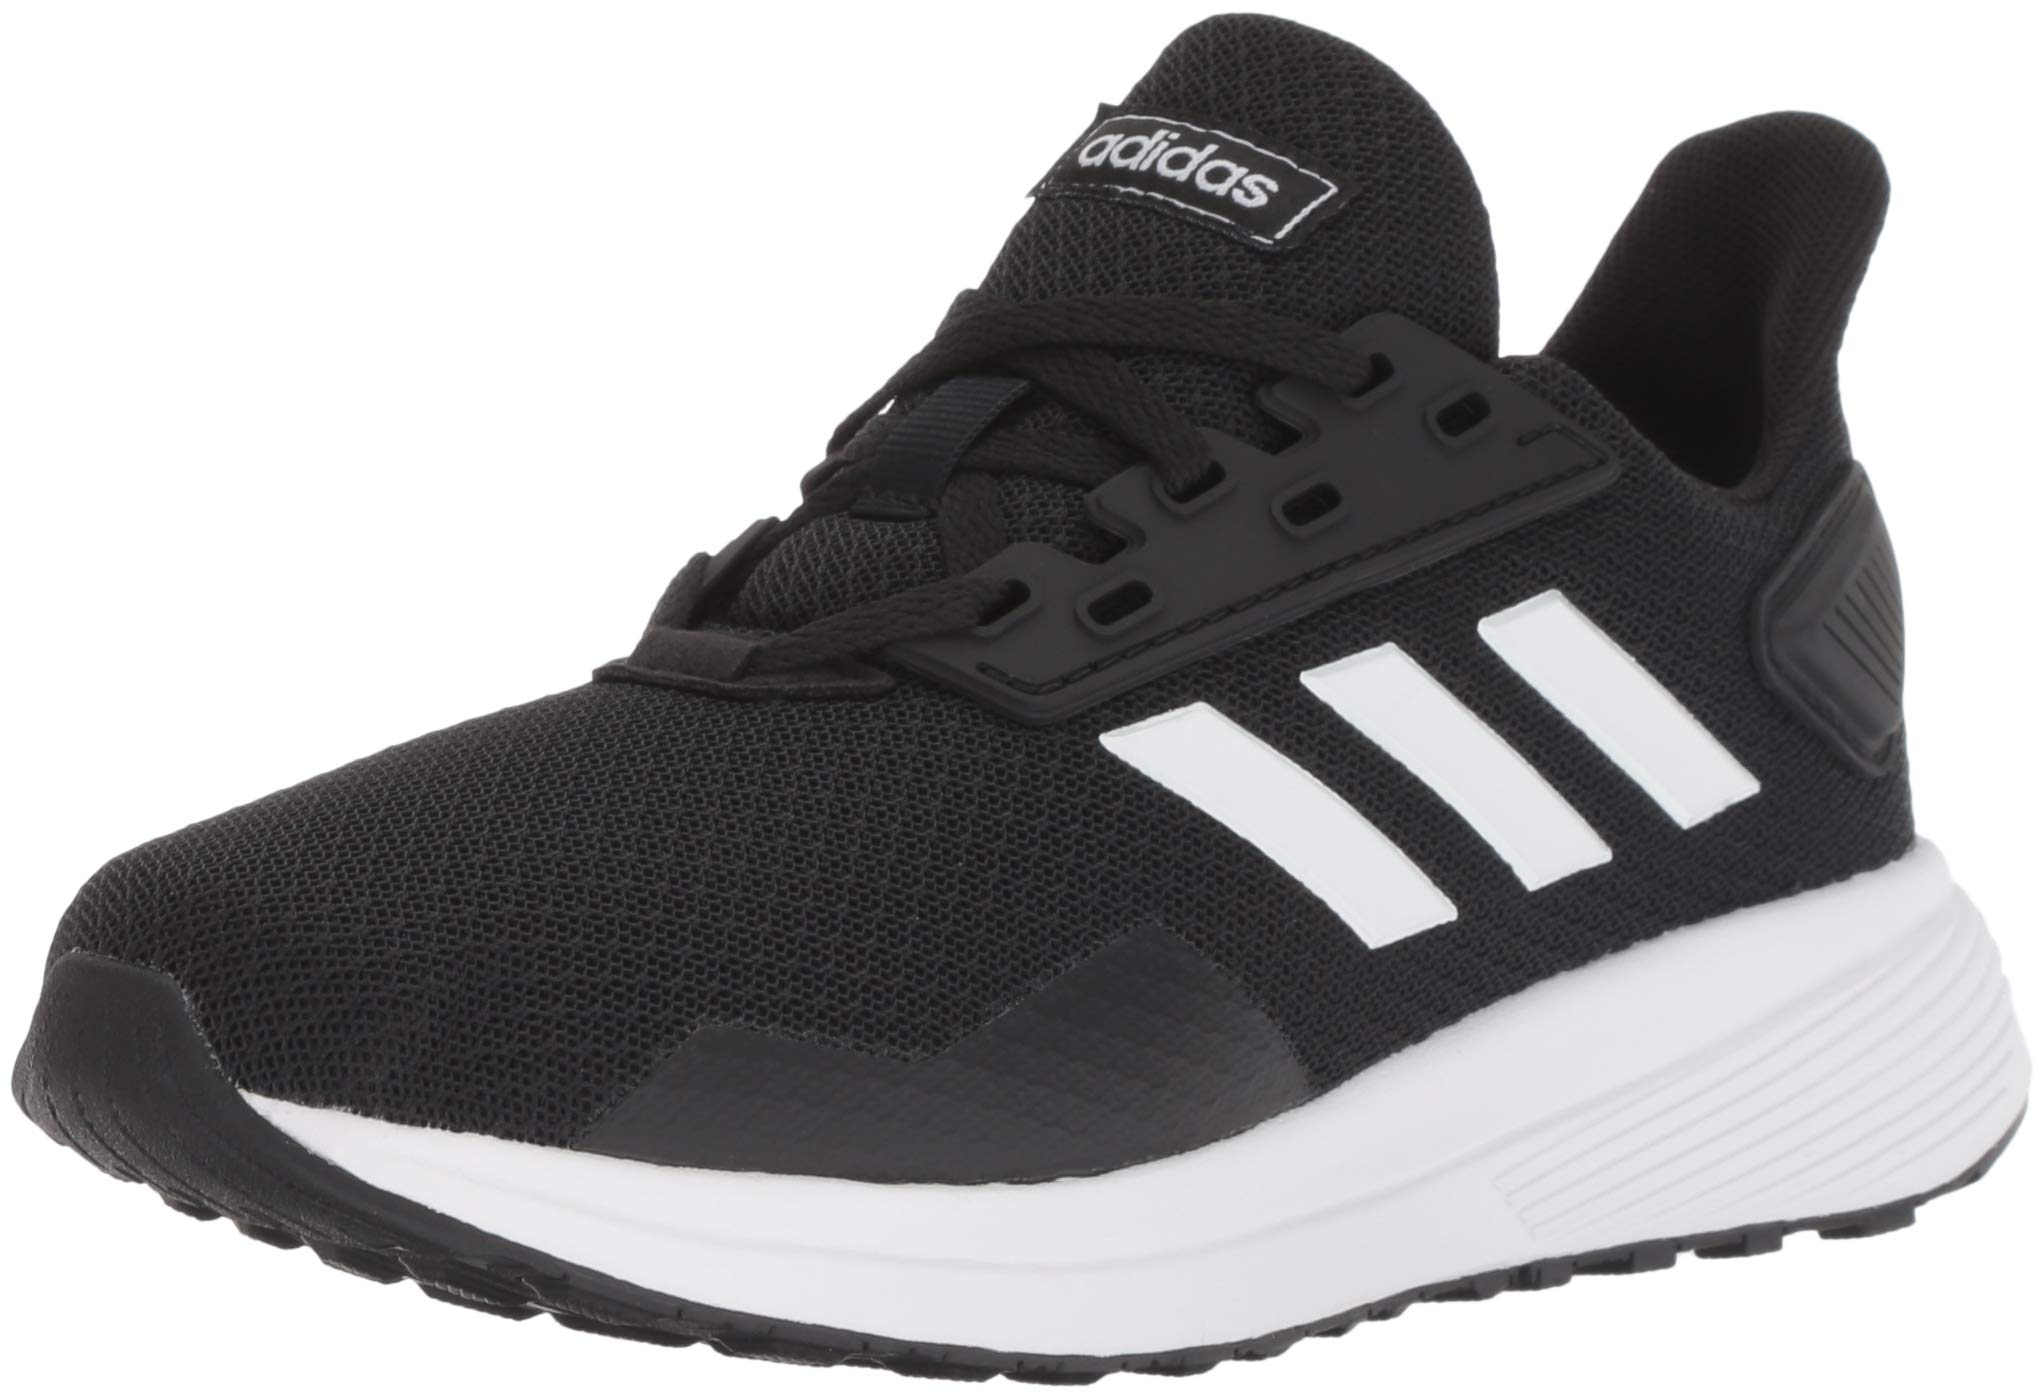 adidas Performance Unisex-Kids Duramo 9 Running Shoe, Black/White/Black, 12K M US Little Kid